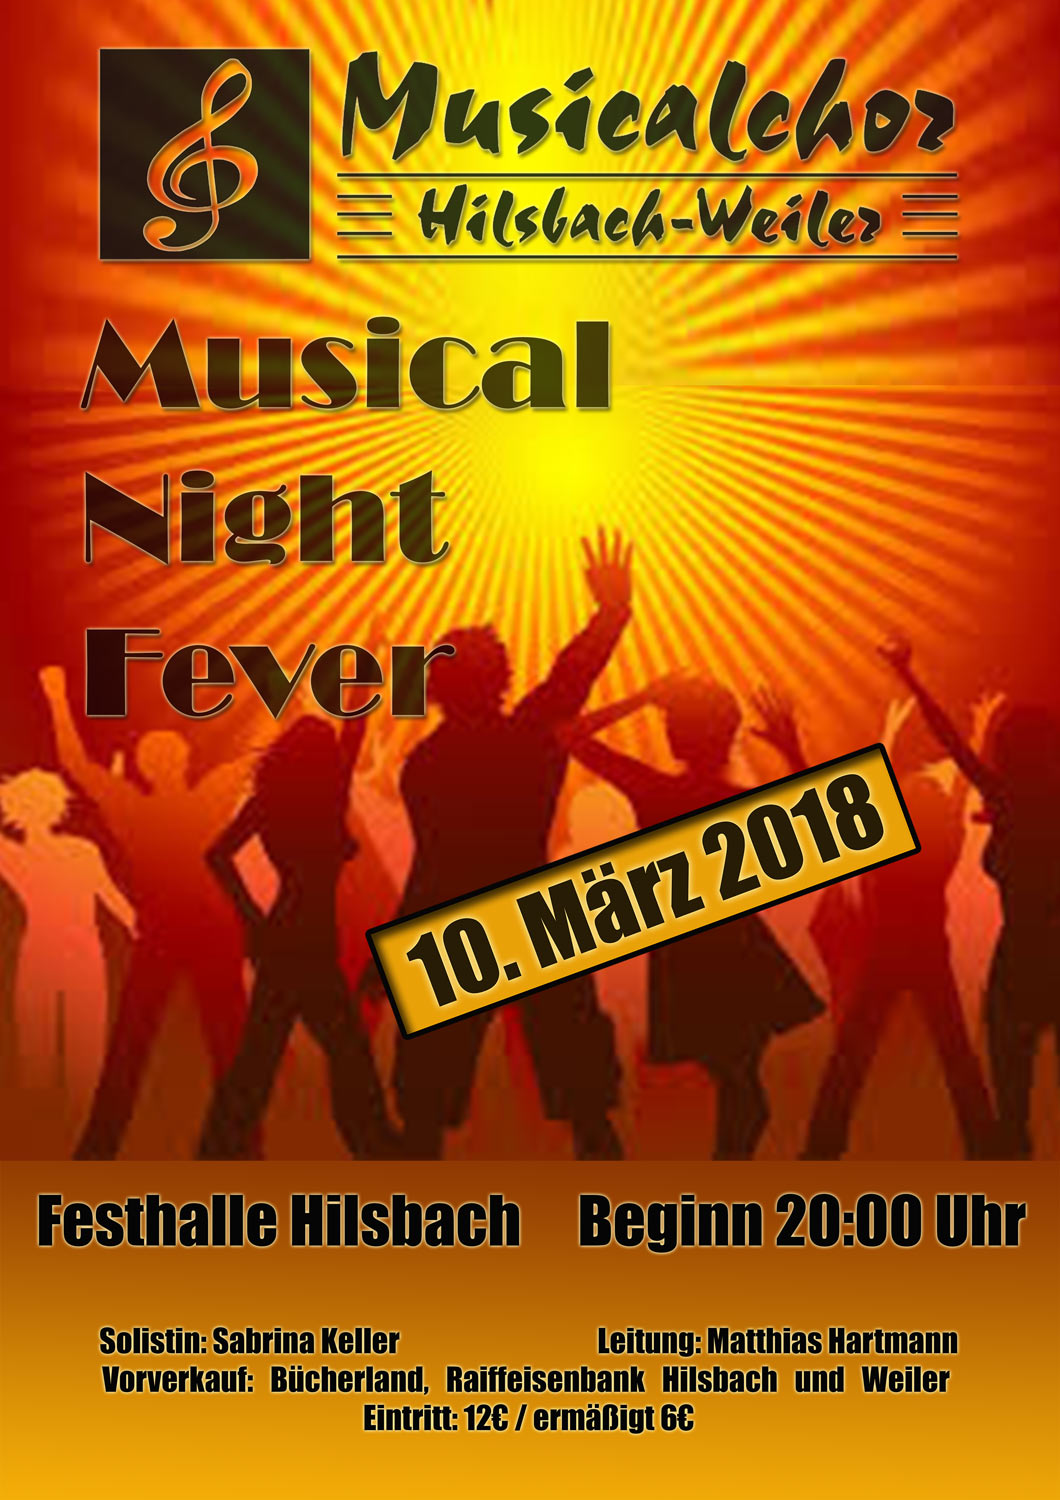 Musical Night Fever